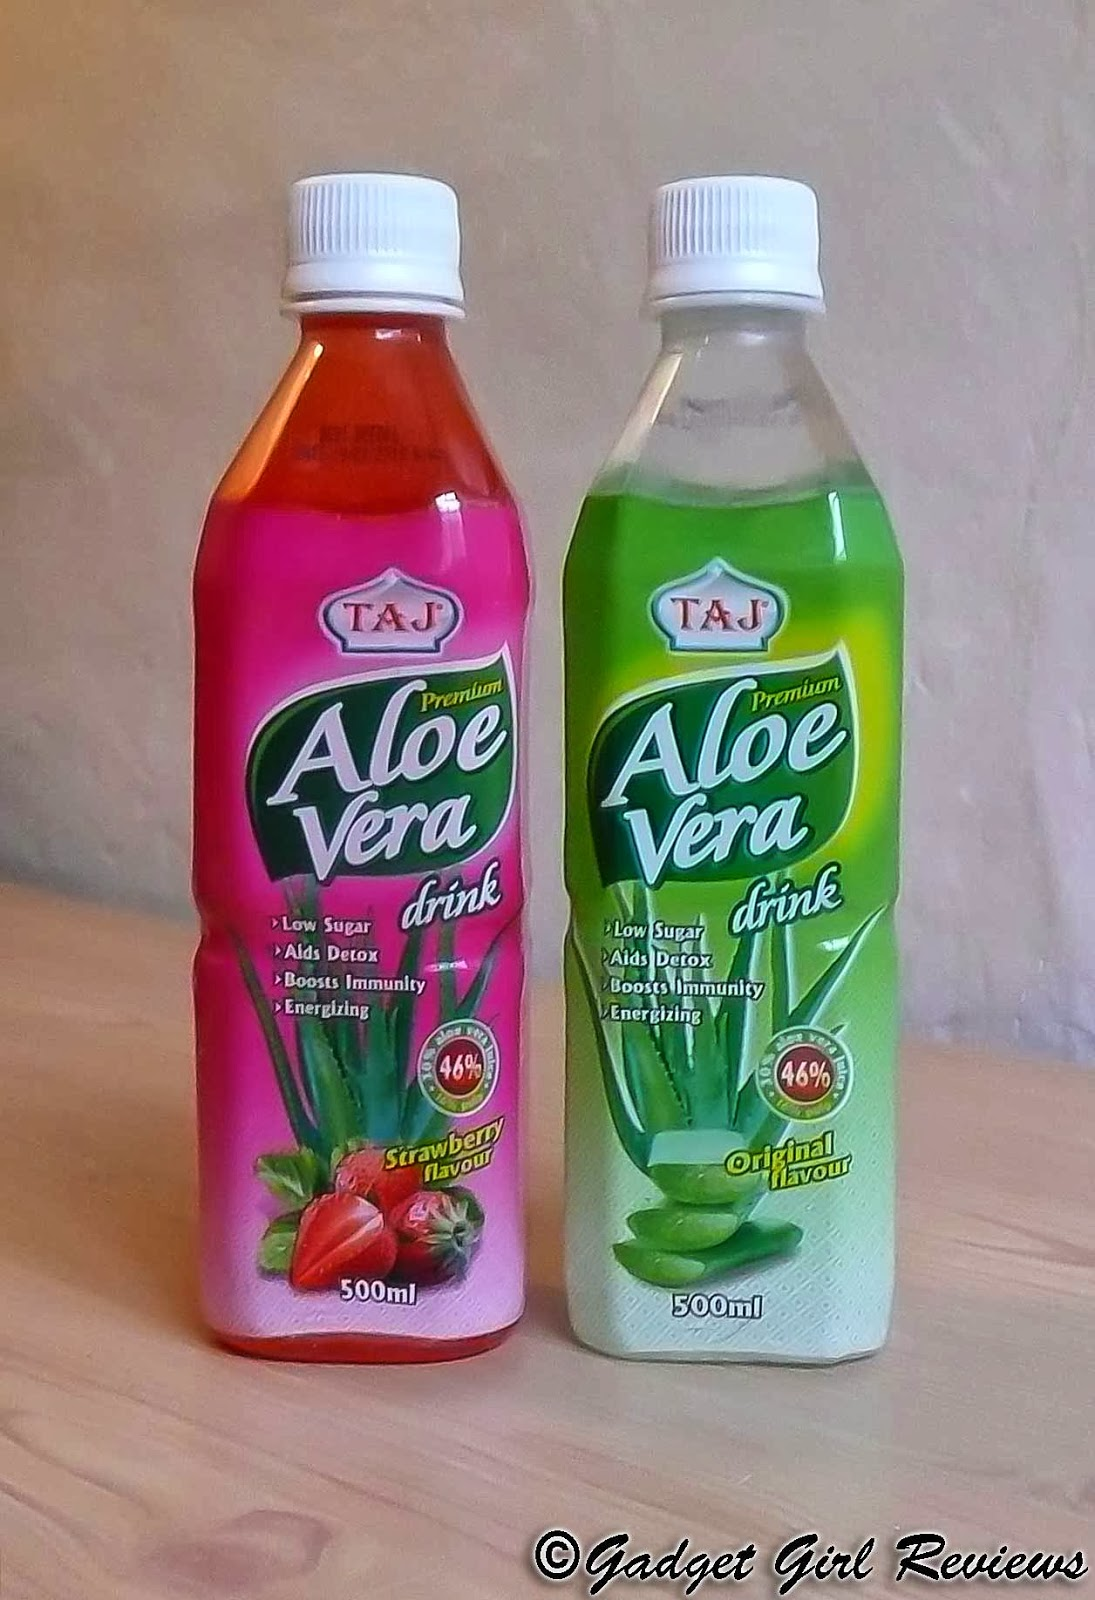 gadget girl reviews new premium aloe vera juice drinks from taj foods review. Black Bedroom Furniture Sets. Home Design Ideas